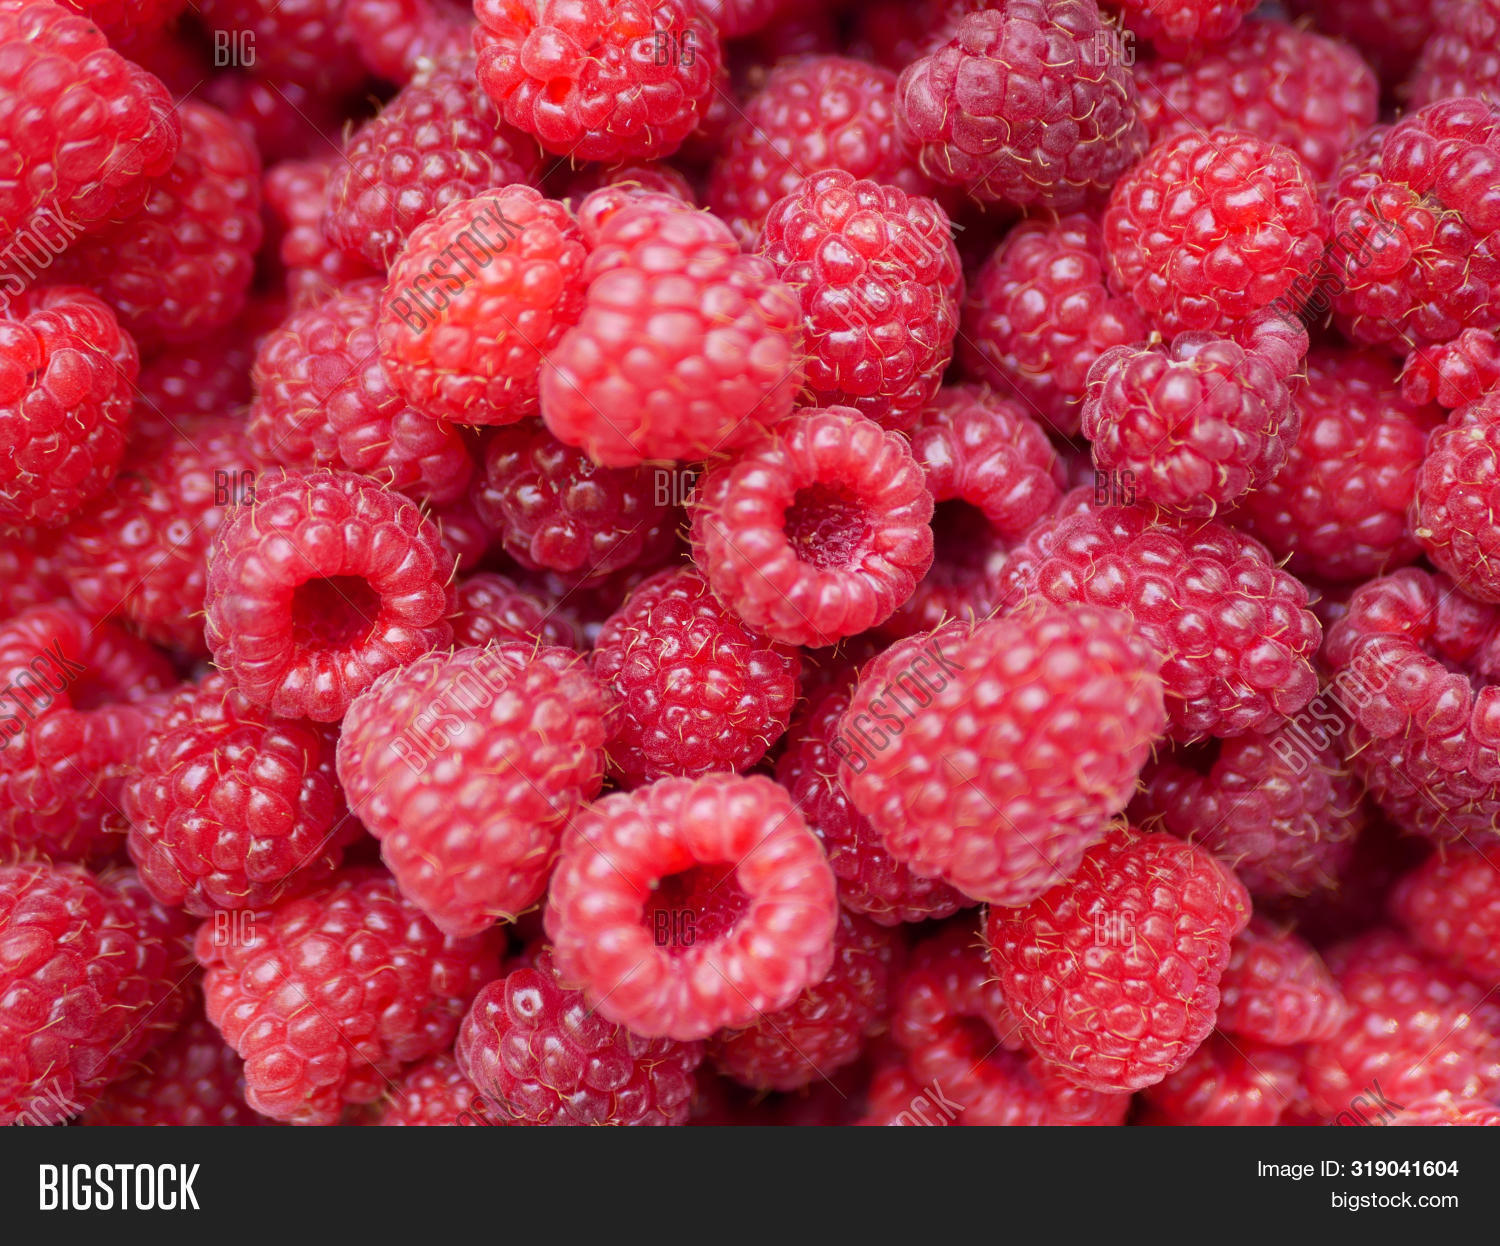 background,background-raspberry,berry,closeup,color,colorful,delicious,dessert,diet,font-raspberry,food,food-raspberry,fresh,freshness,fruit,fruit-raspberries,gourmet,health,healthy,hoarfrost,horizontal,ingredient,juicy,macro,many,natural,nature,nature-raspberry,nobody,nutrition,organic,pattern-raspberry,pink,plant,raspberries,raw,red,ripe,snack,summer,sweet,taste,tasty,texture,vegetarian,vitamin,wallpaper-raspberry